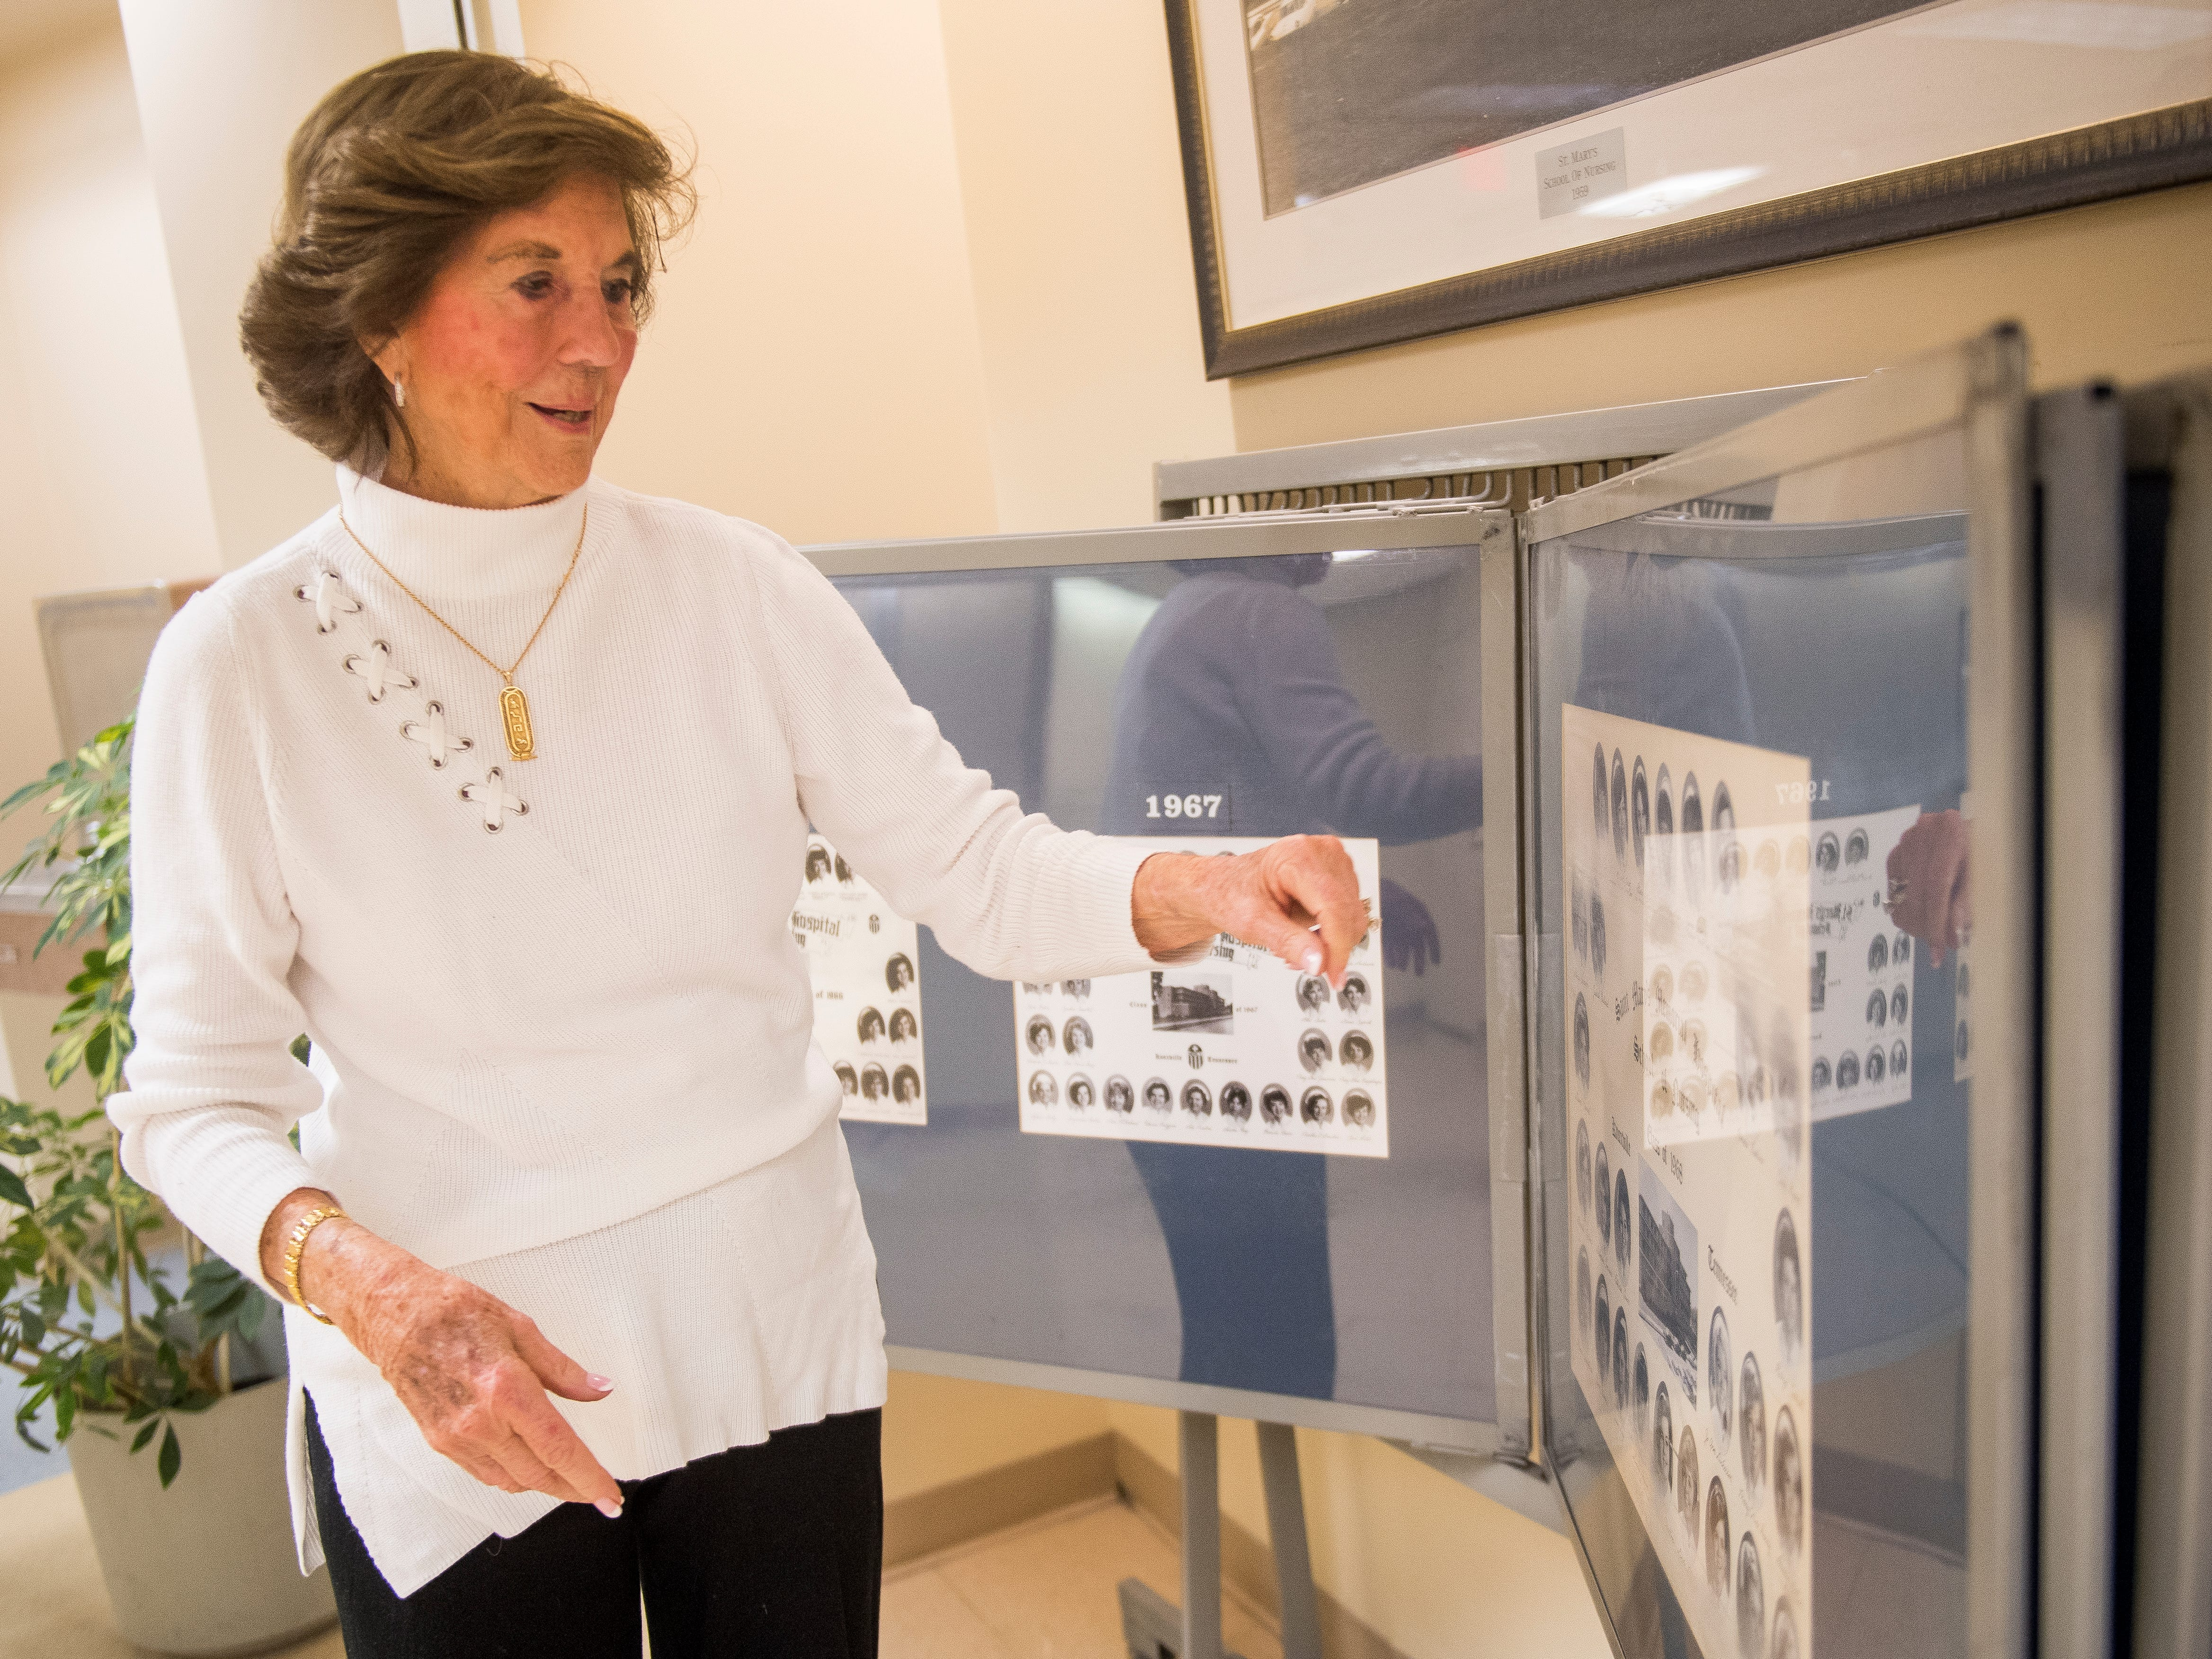 Former St. Mary's School of Nursing director Margaret Heins looks through photos of former students on display at Physicians Regional Medical Center on Friday, November 30, 2018.